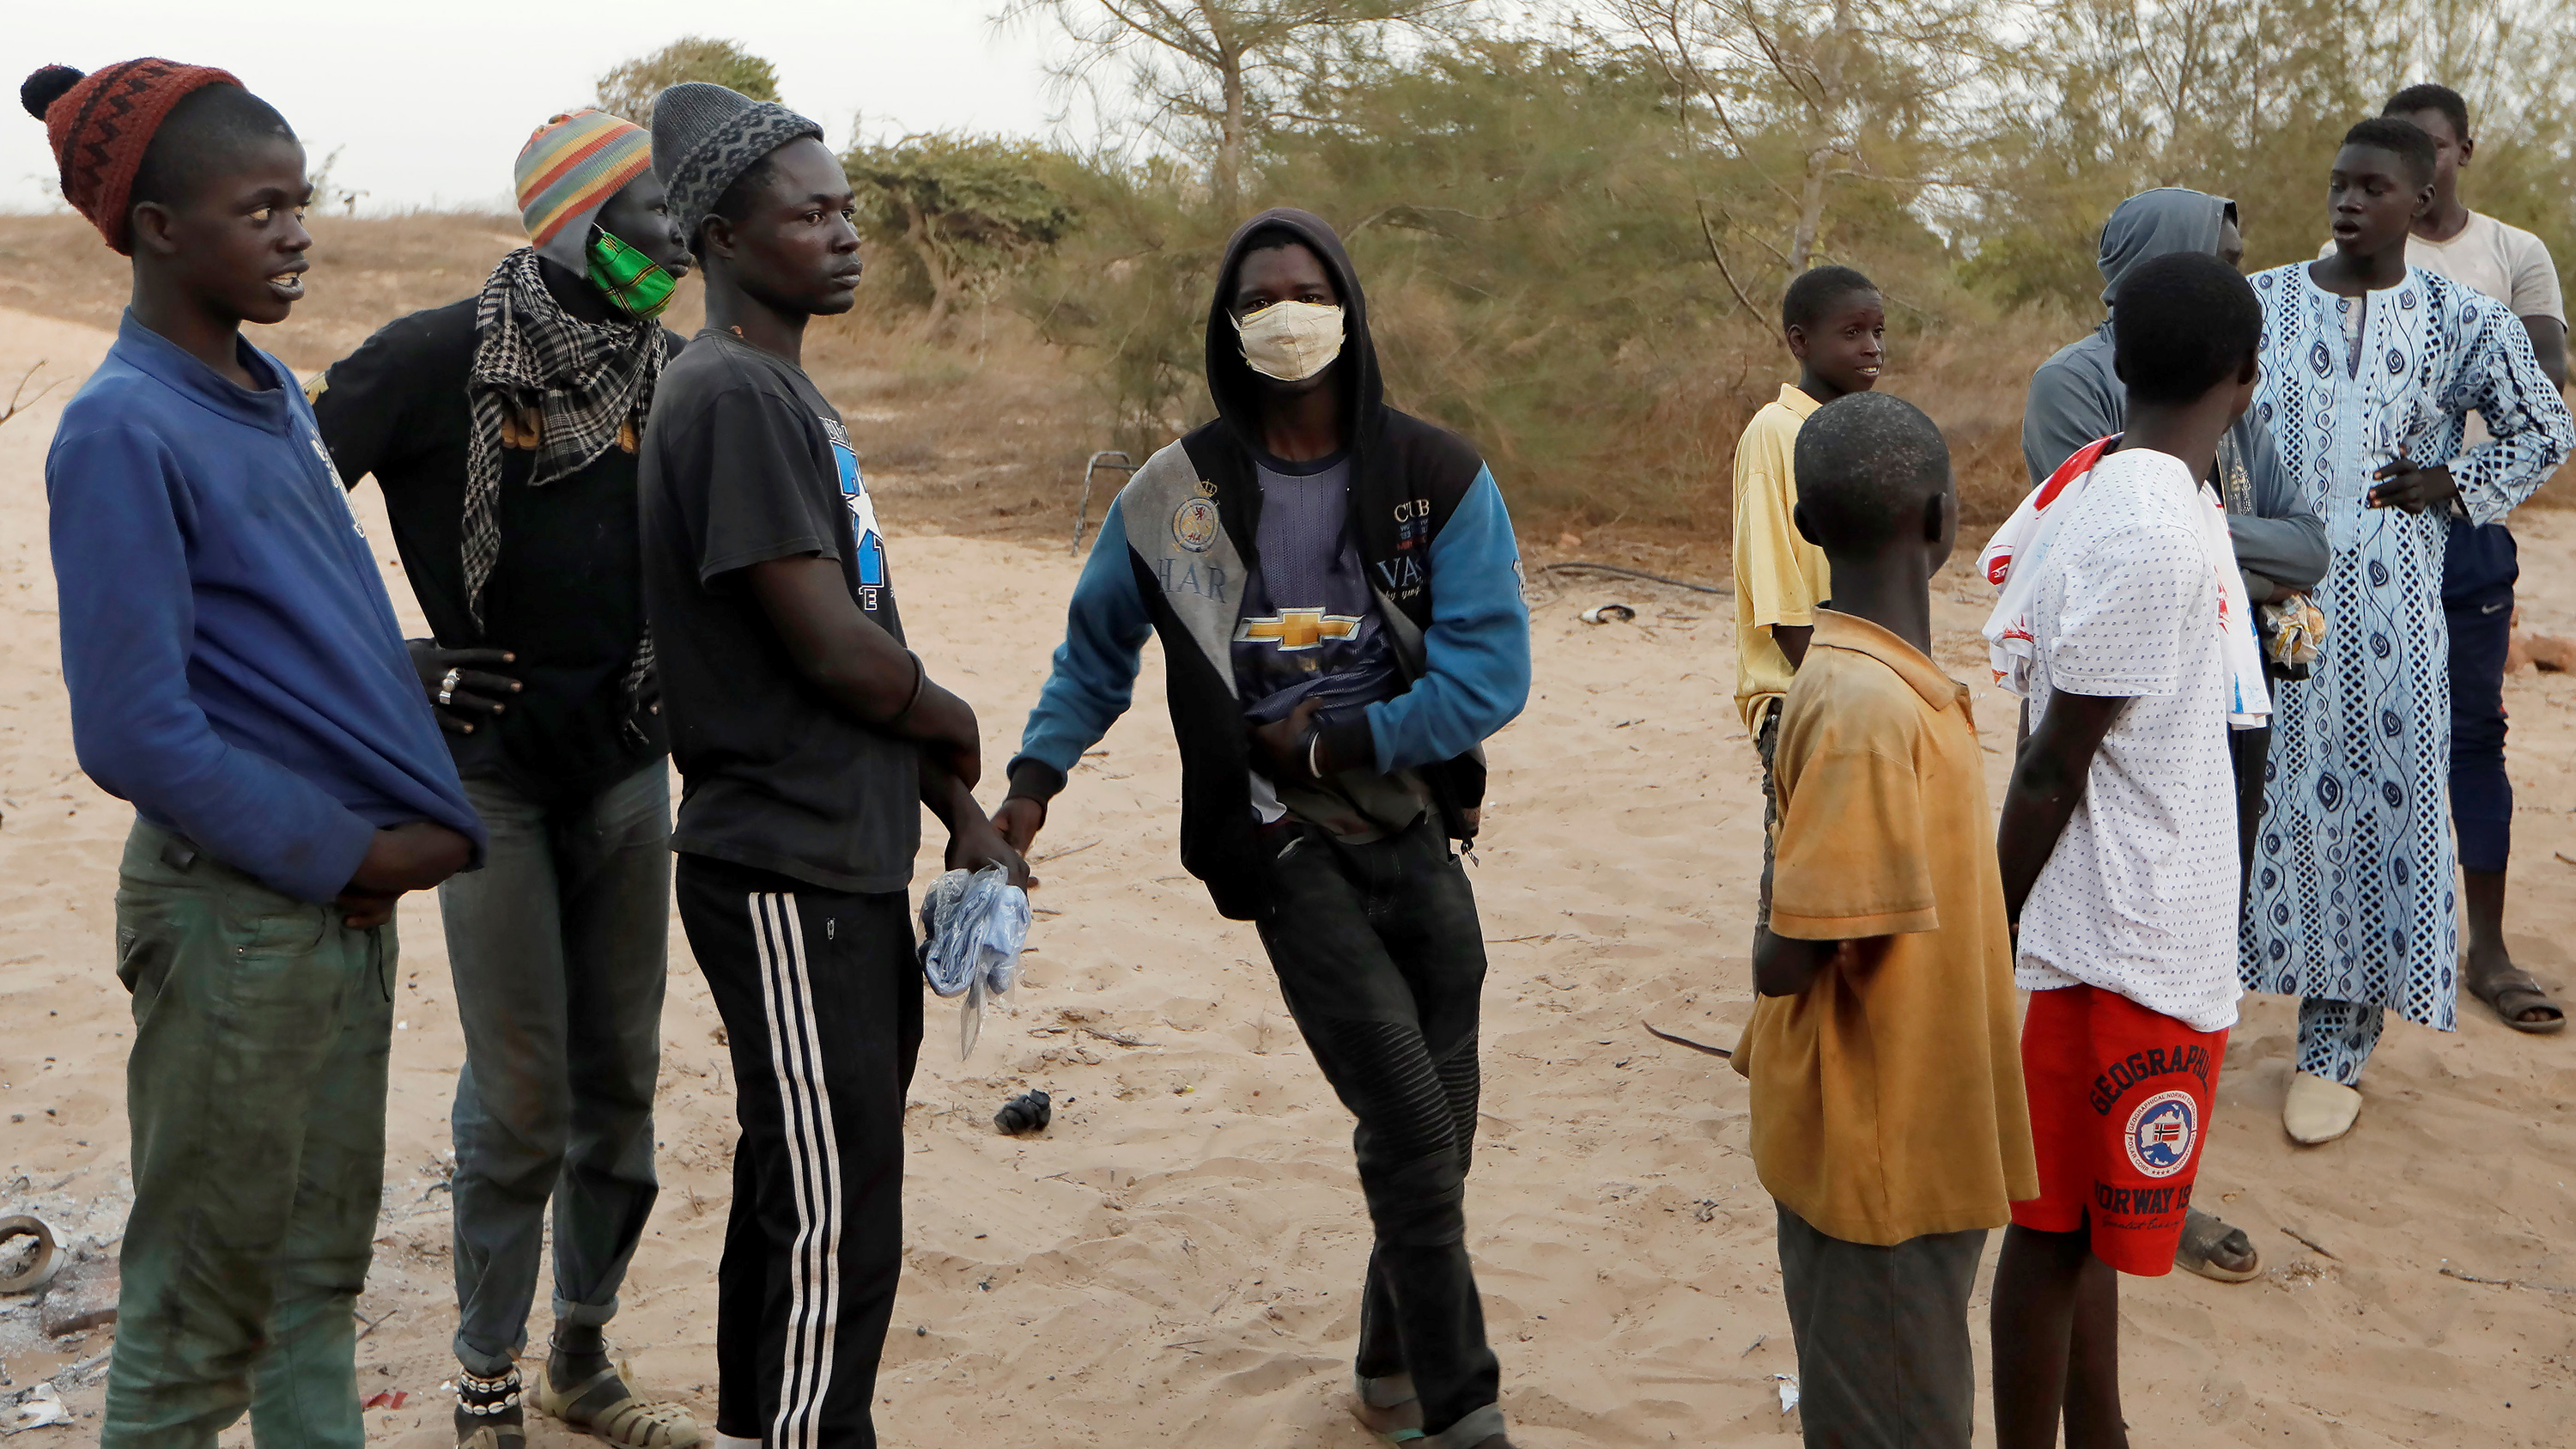 Picture shows a number of teenage boys standing around. One of them is wearing a mask.